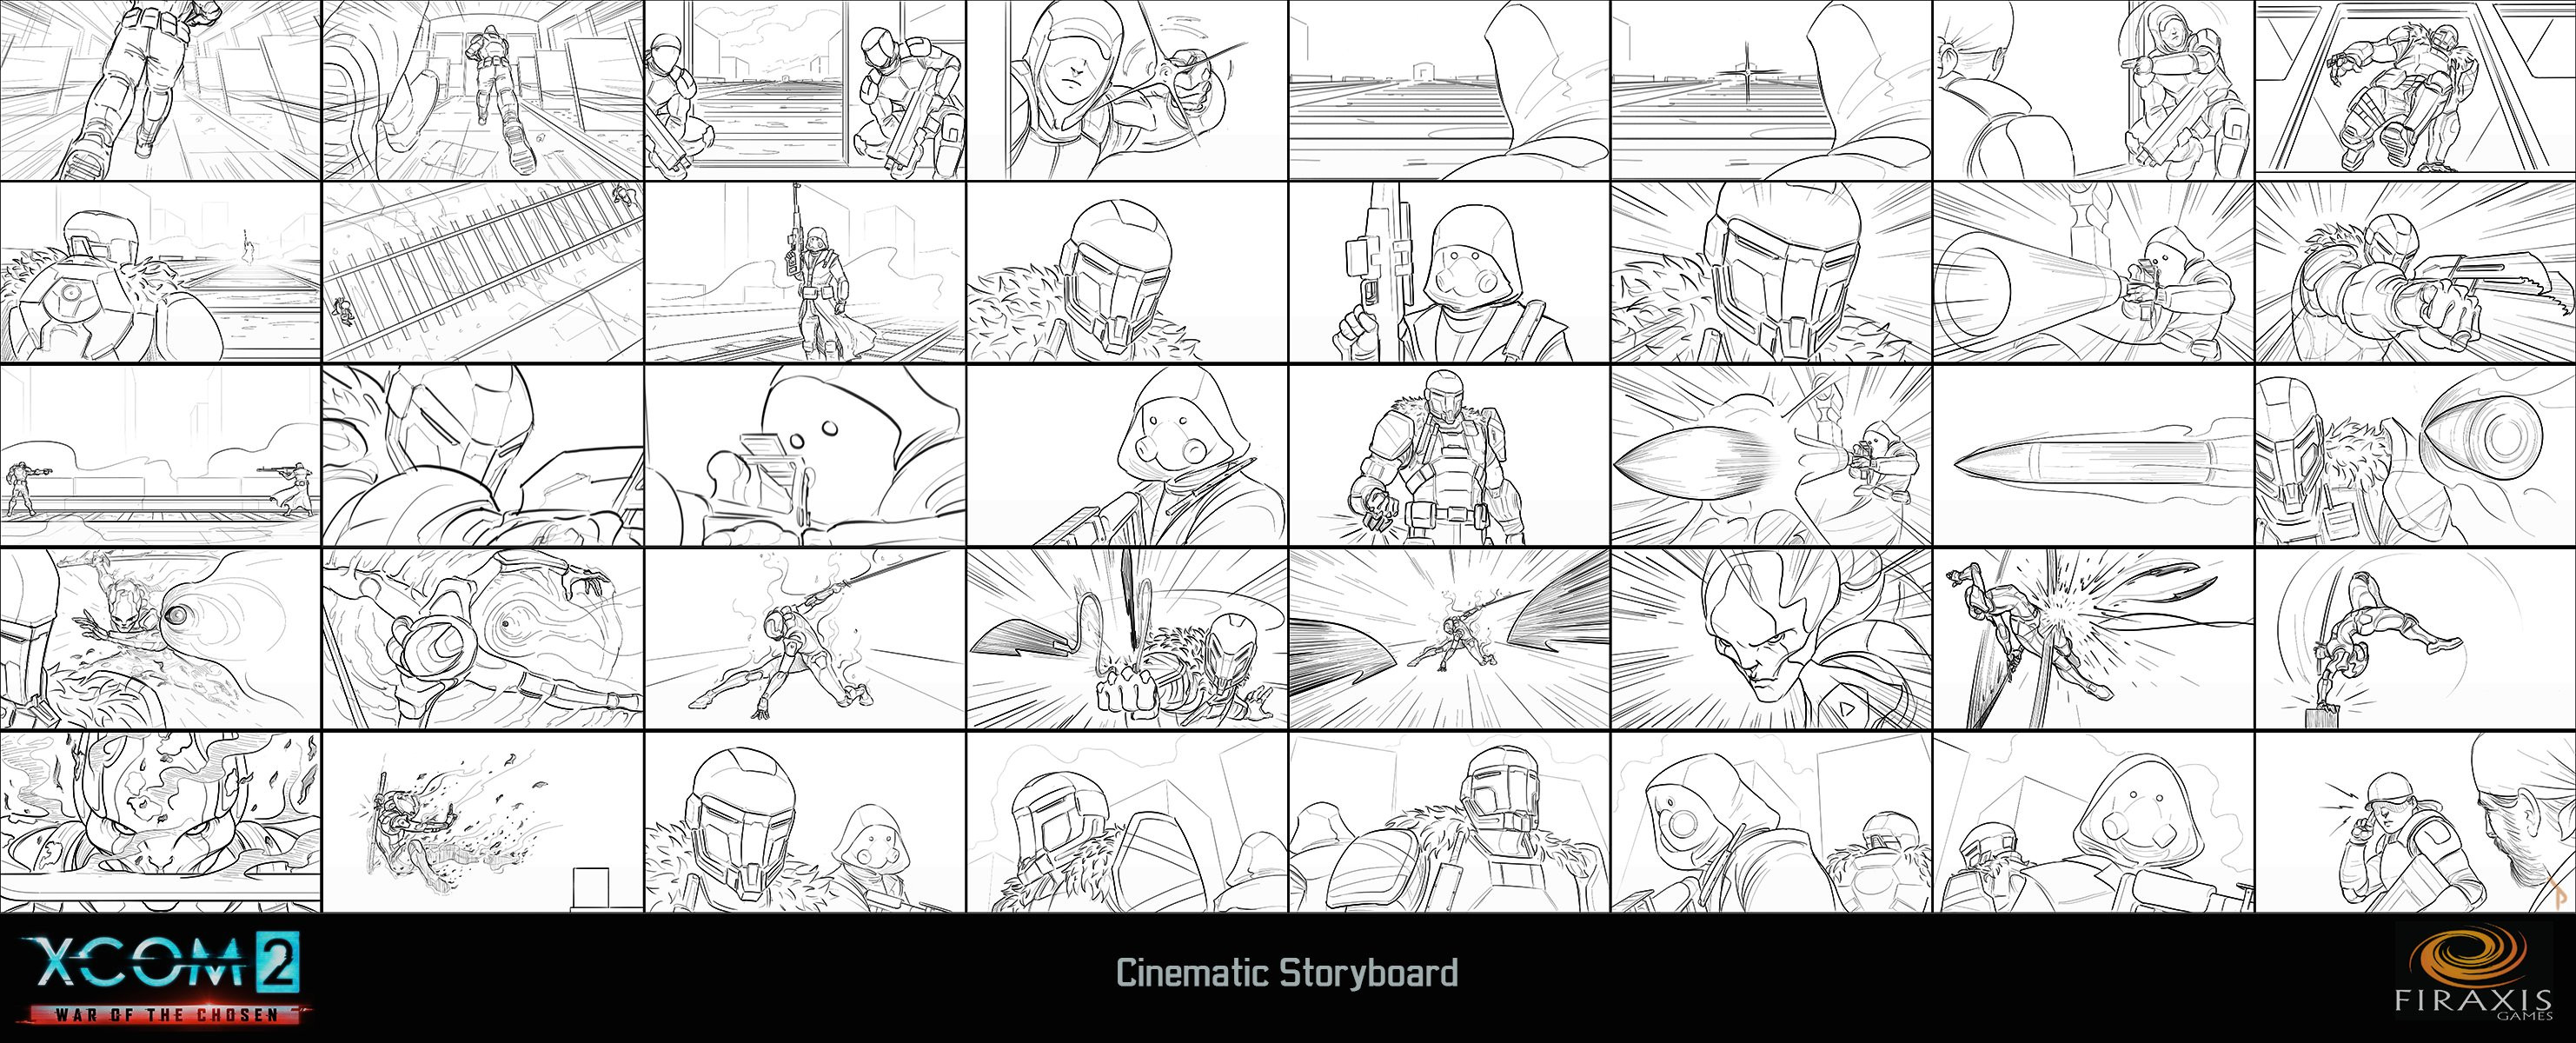 XCOM 2: WOTC Cinematic Storyboard (line)